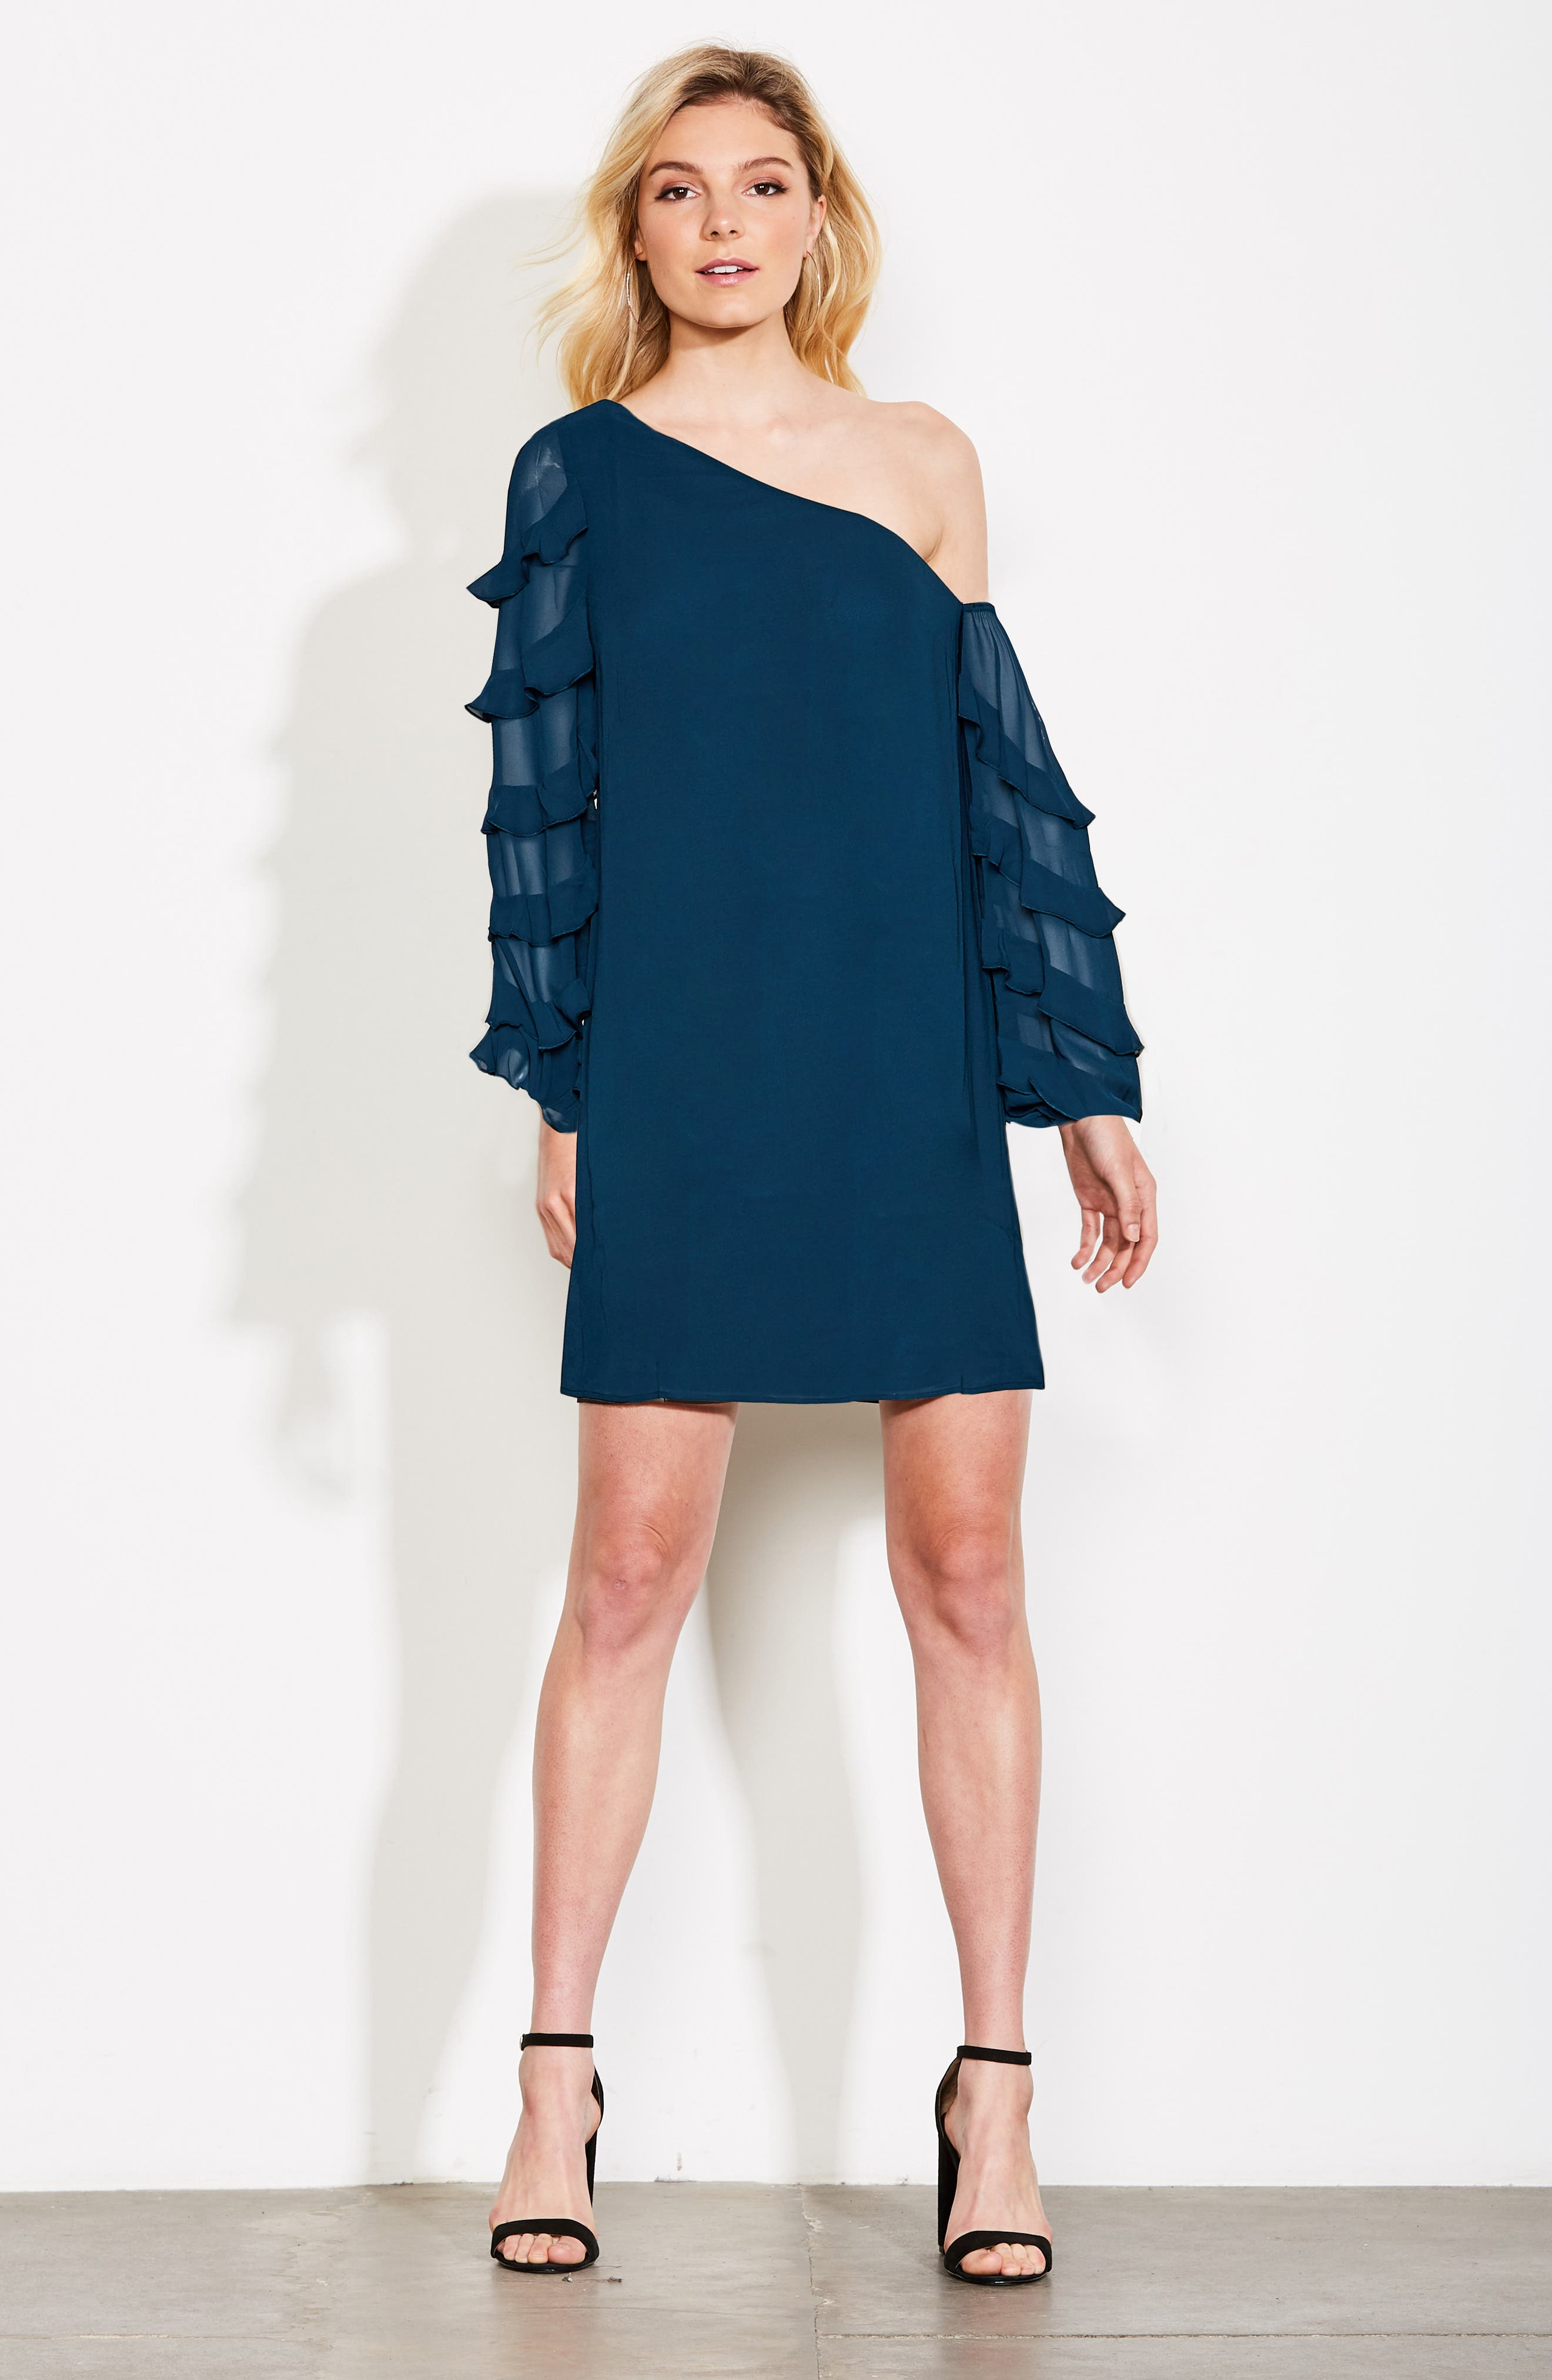 Love the Way I Look Tonight One-Shoulder Minidress,                             Alternate thumbnail 7, color,                             TEAL